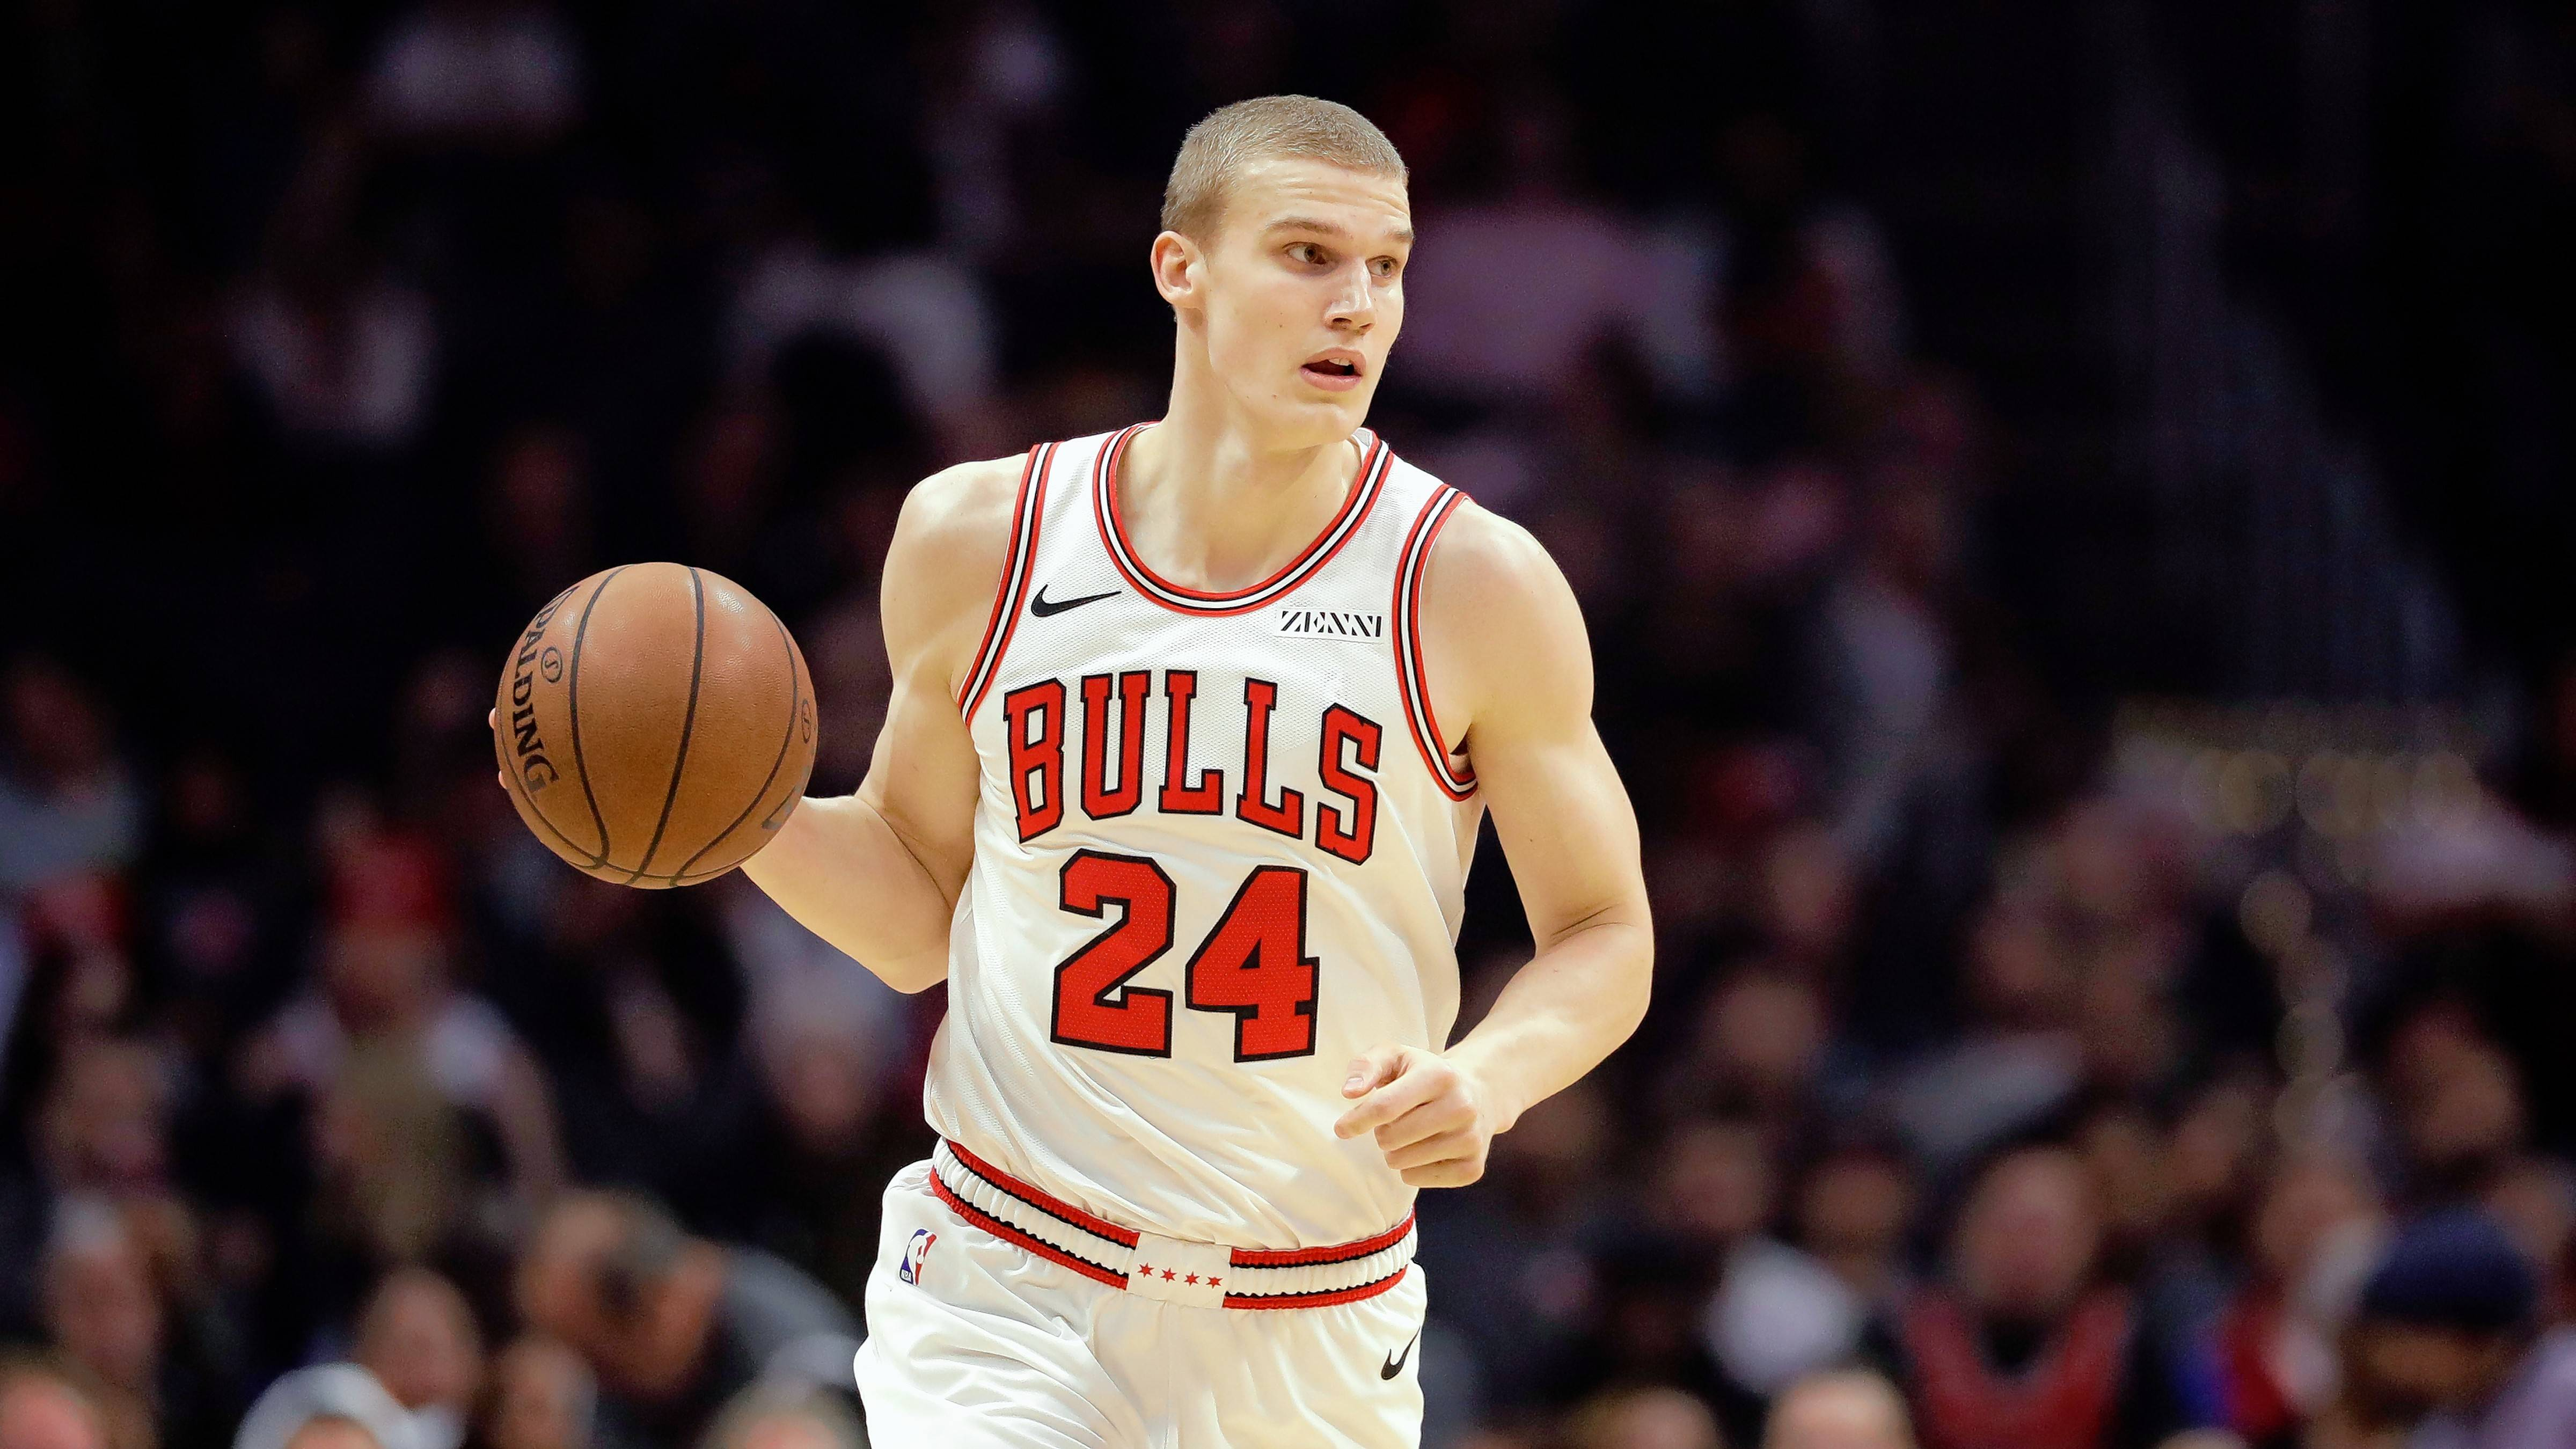 Chicago Bulls' Lauri Markkanen during an NBA basketball game Friday, March 15, 2019, in Los Angeles. (AP Photo/Marcio Jose Sanchez)